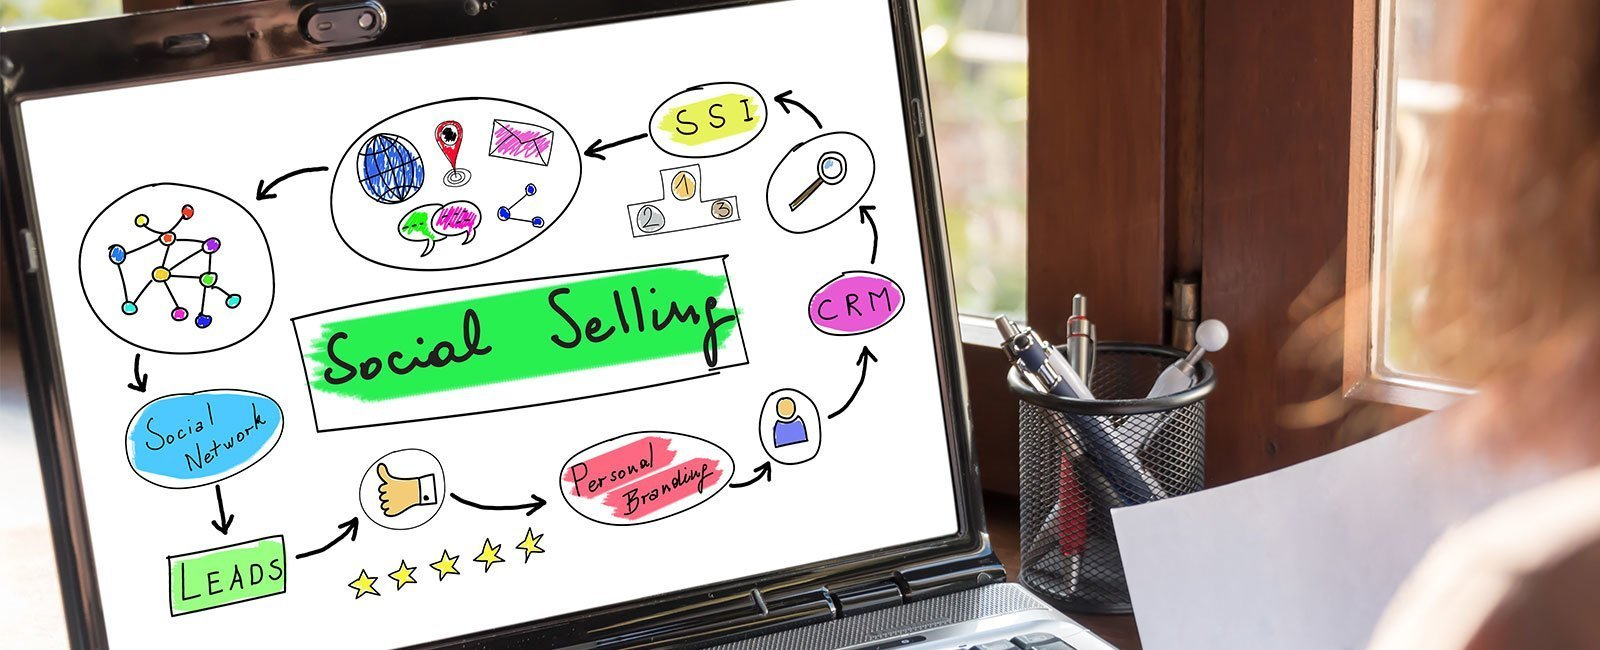 Blog econsor SOCIAL SELLING mit Social Media Posts